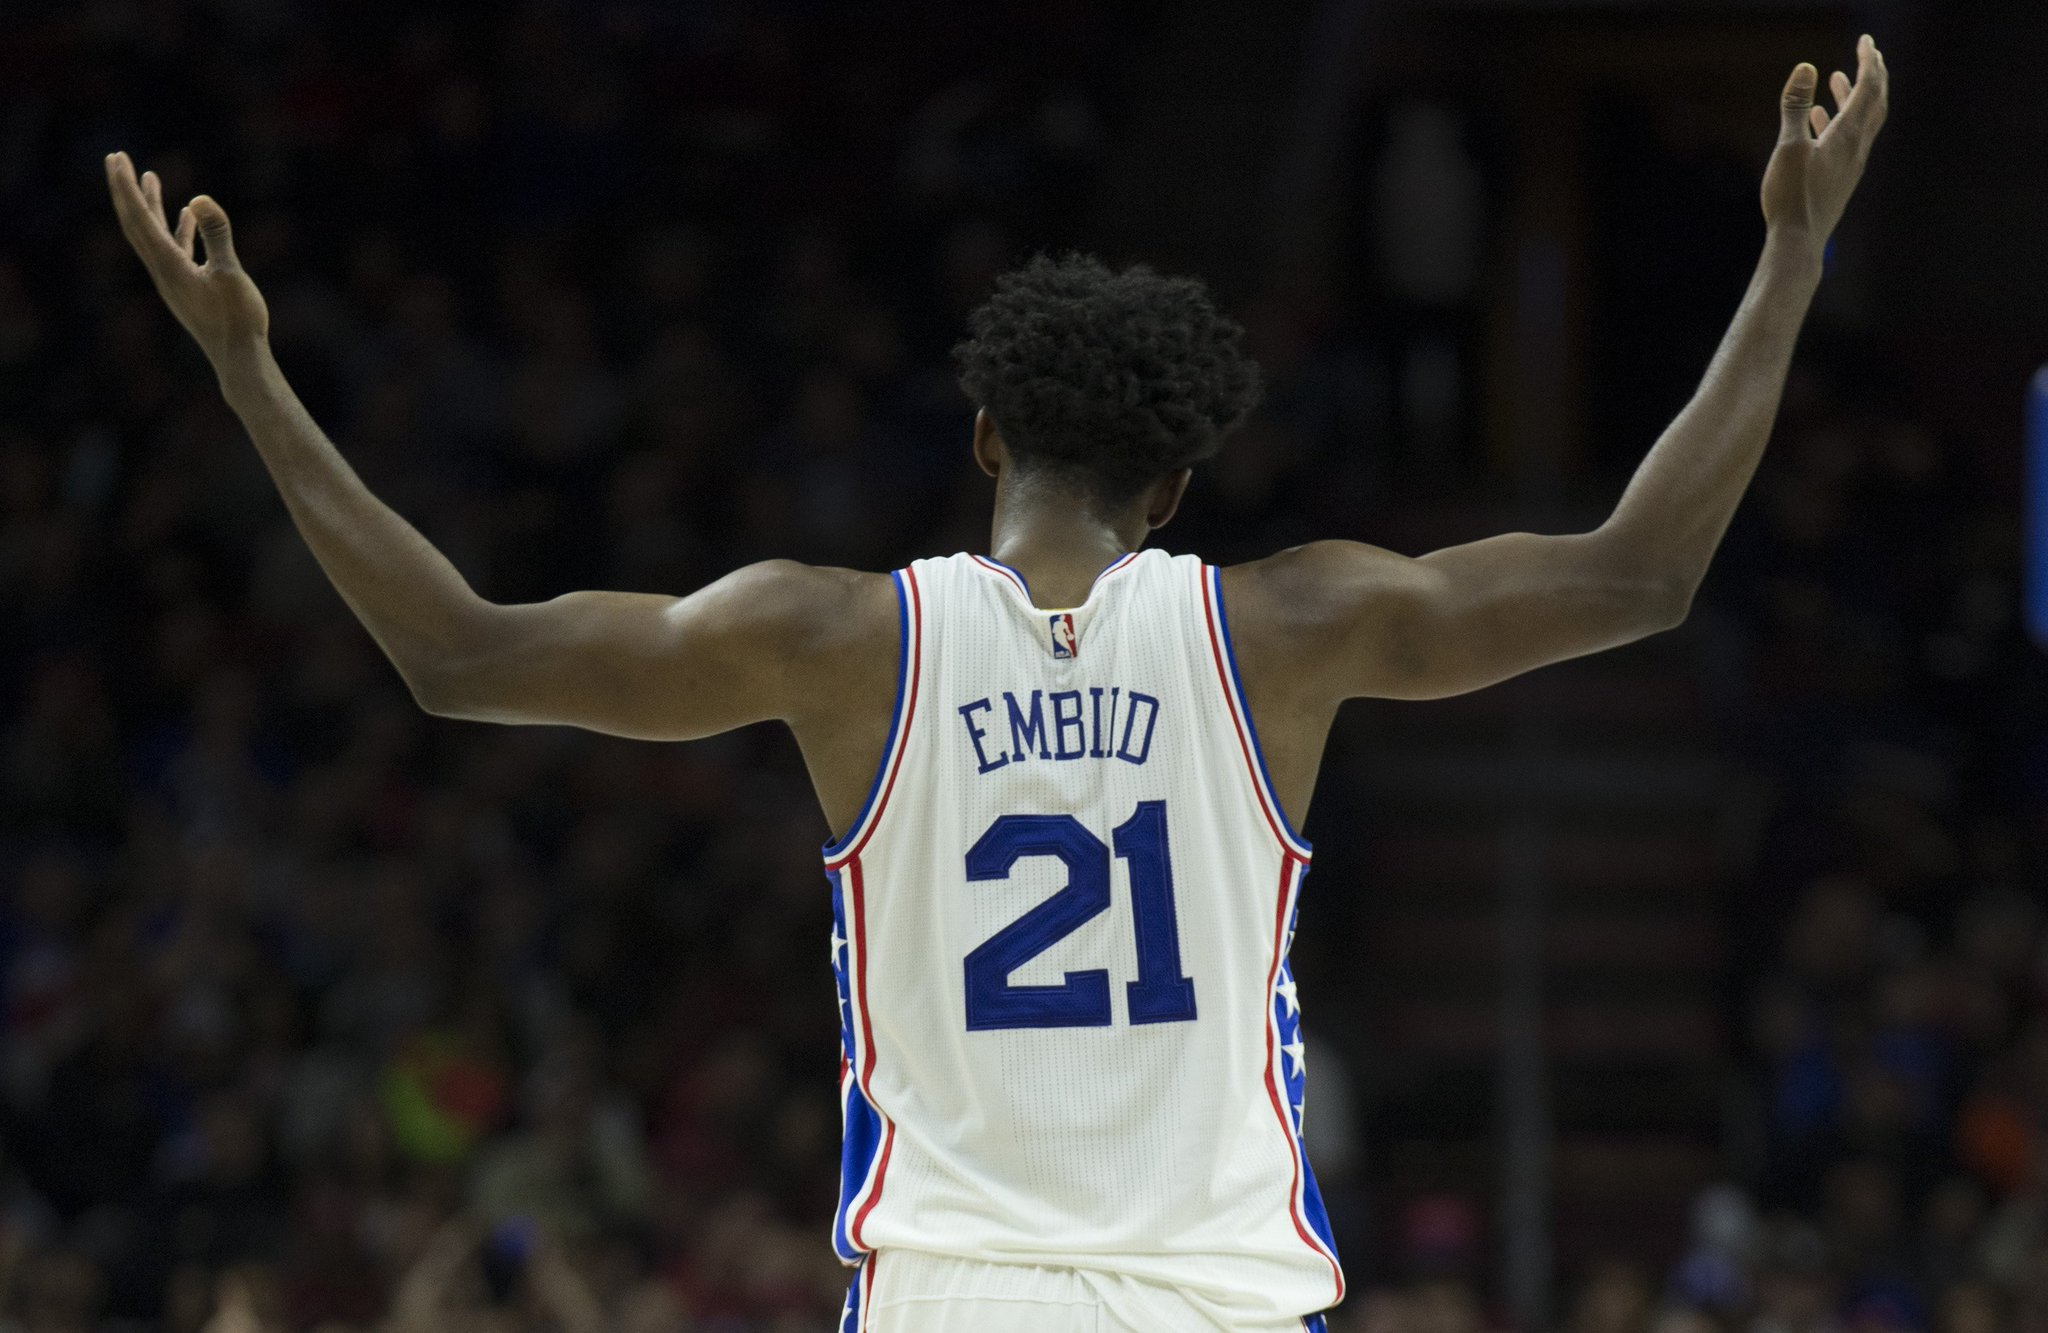 BREAKING: @Sixers Joel Embiid 'very likely' to have knee surgery, @ESPNSteinLine reports: https://t.co/4Uncl7bMNh https://t.co/0DppL6Sz9C